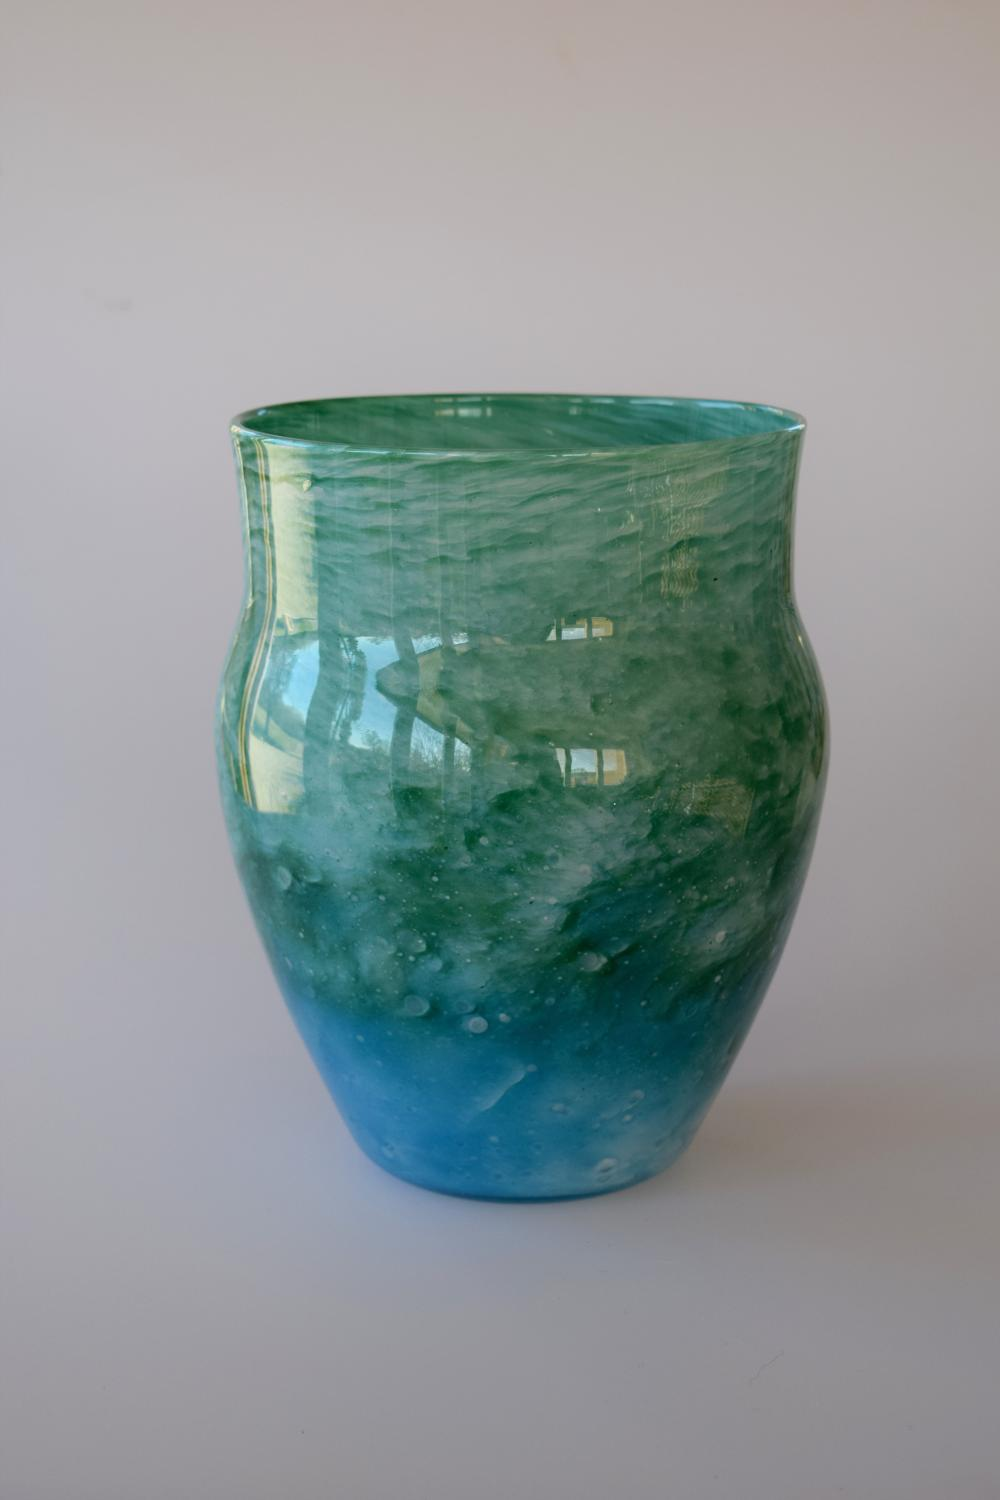 Cloudy blue and green urn shaped vase.